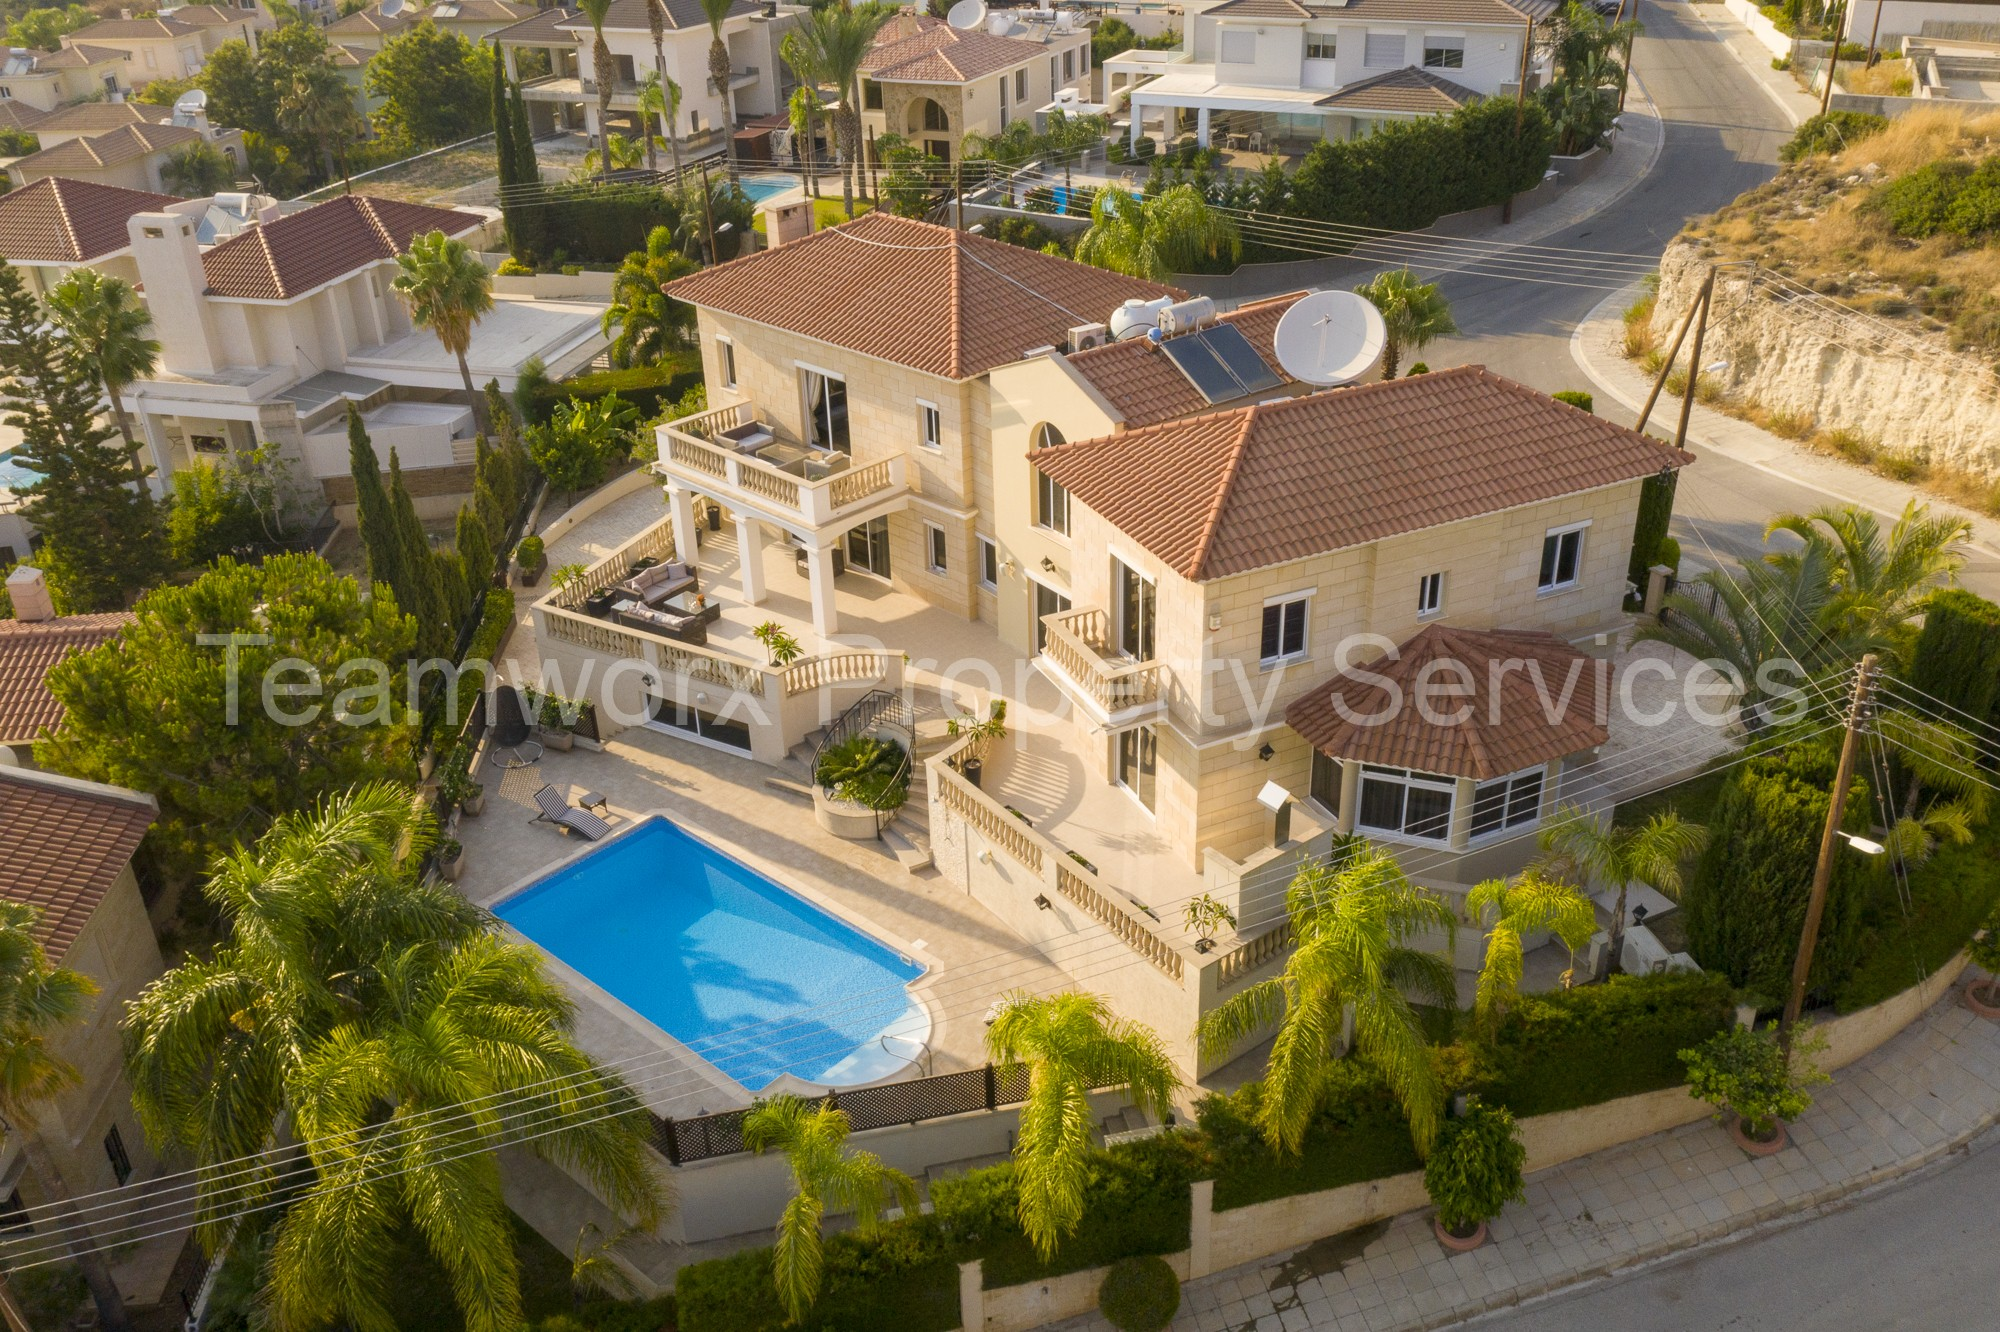 5 Bedroom Villa for Sale in Agios Tychonas, Limassol